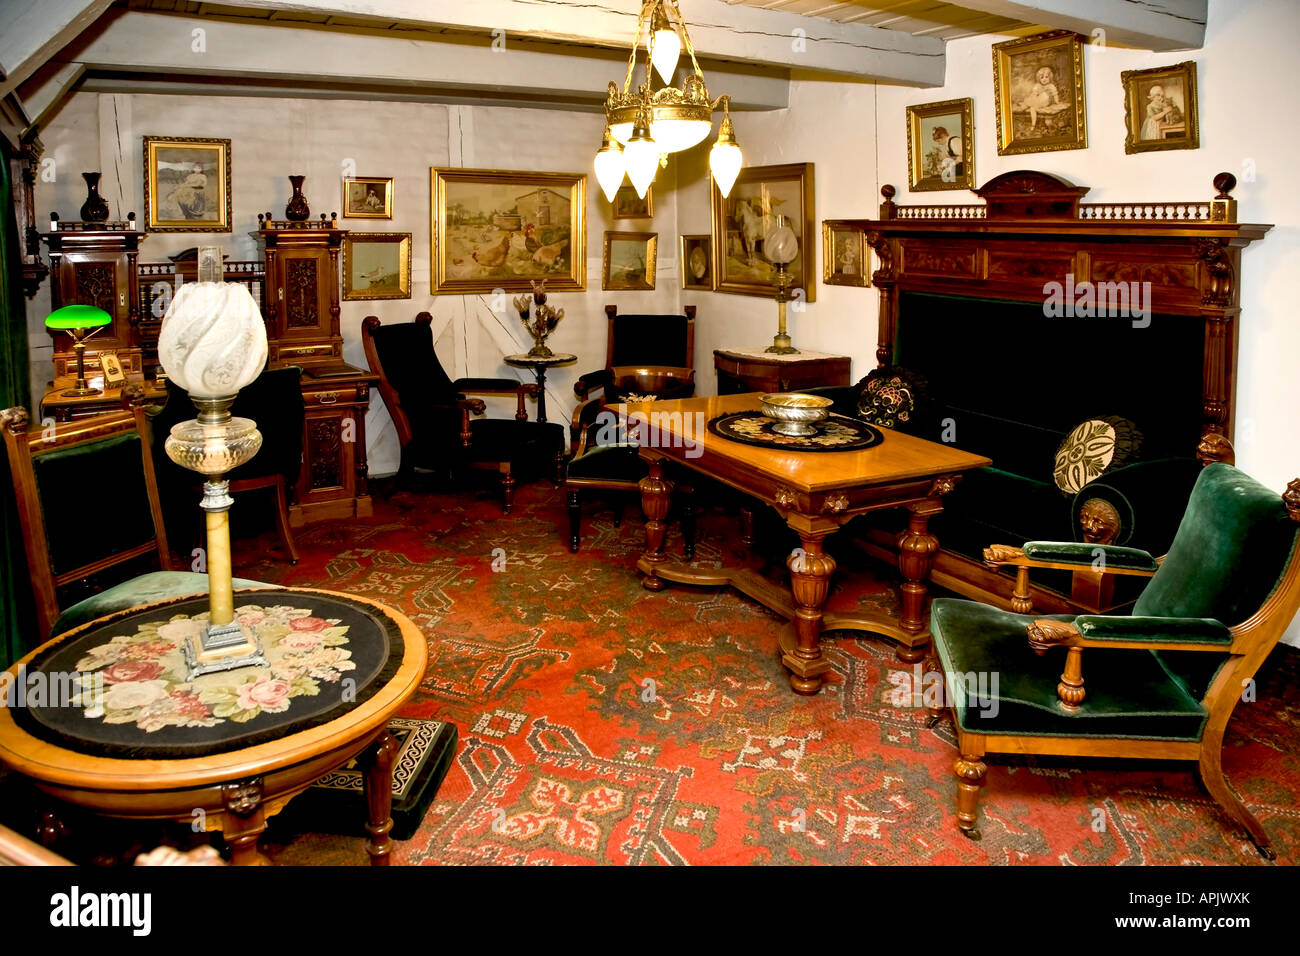 Ancien salon de 1920 Banque D\'Images, Photo Stock: 15807882 - Alamy